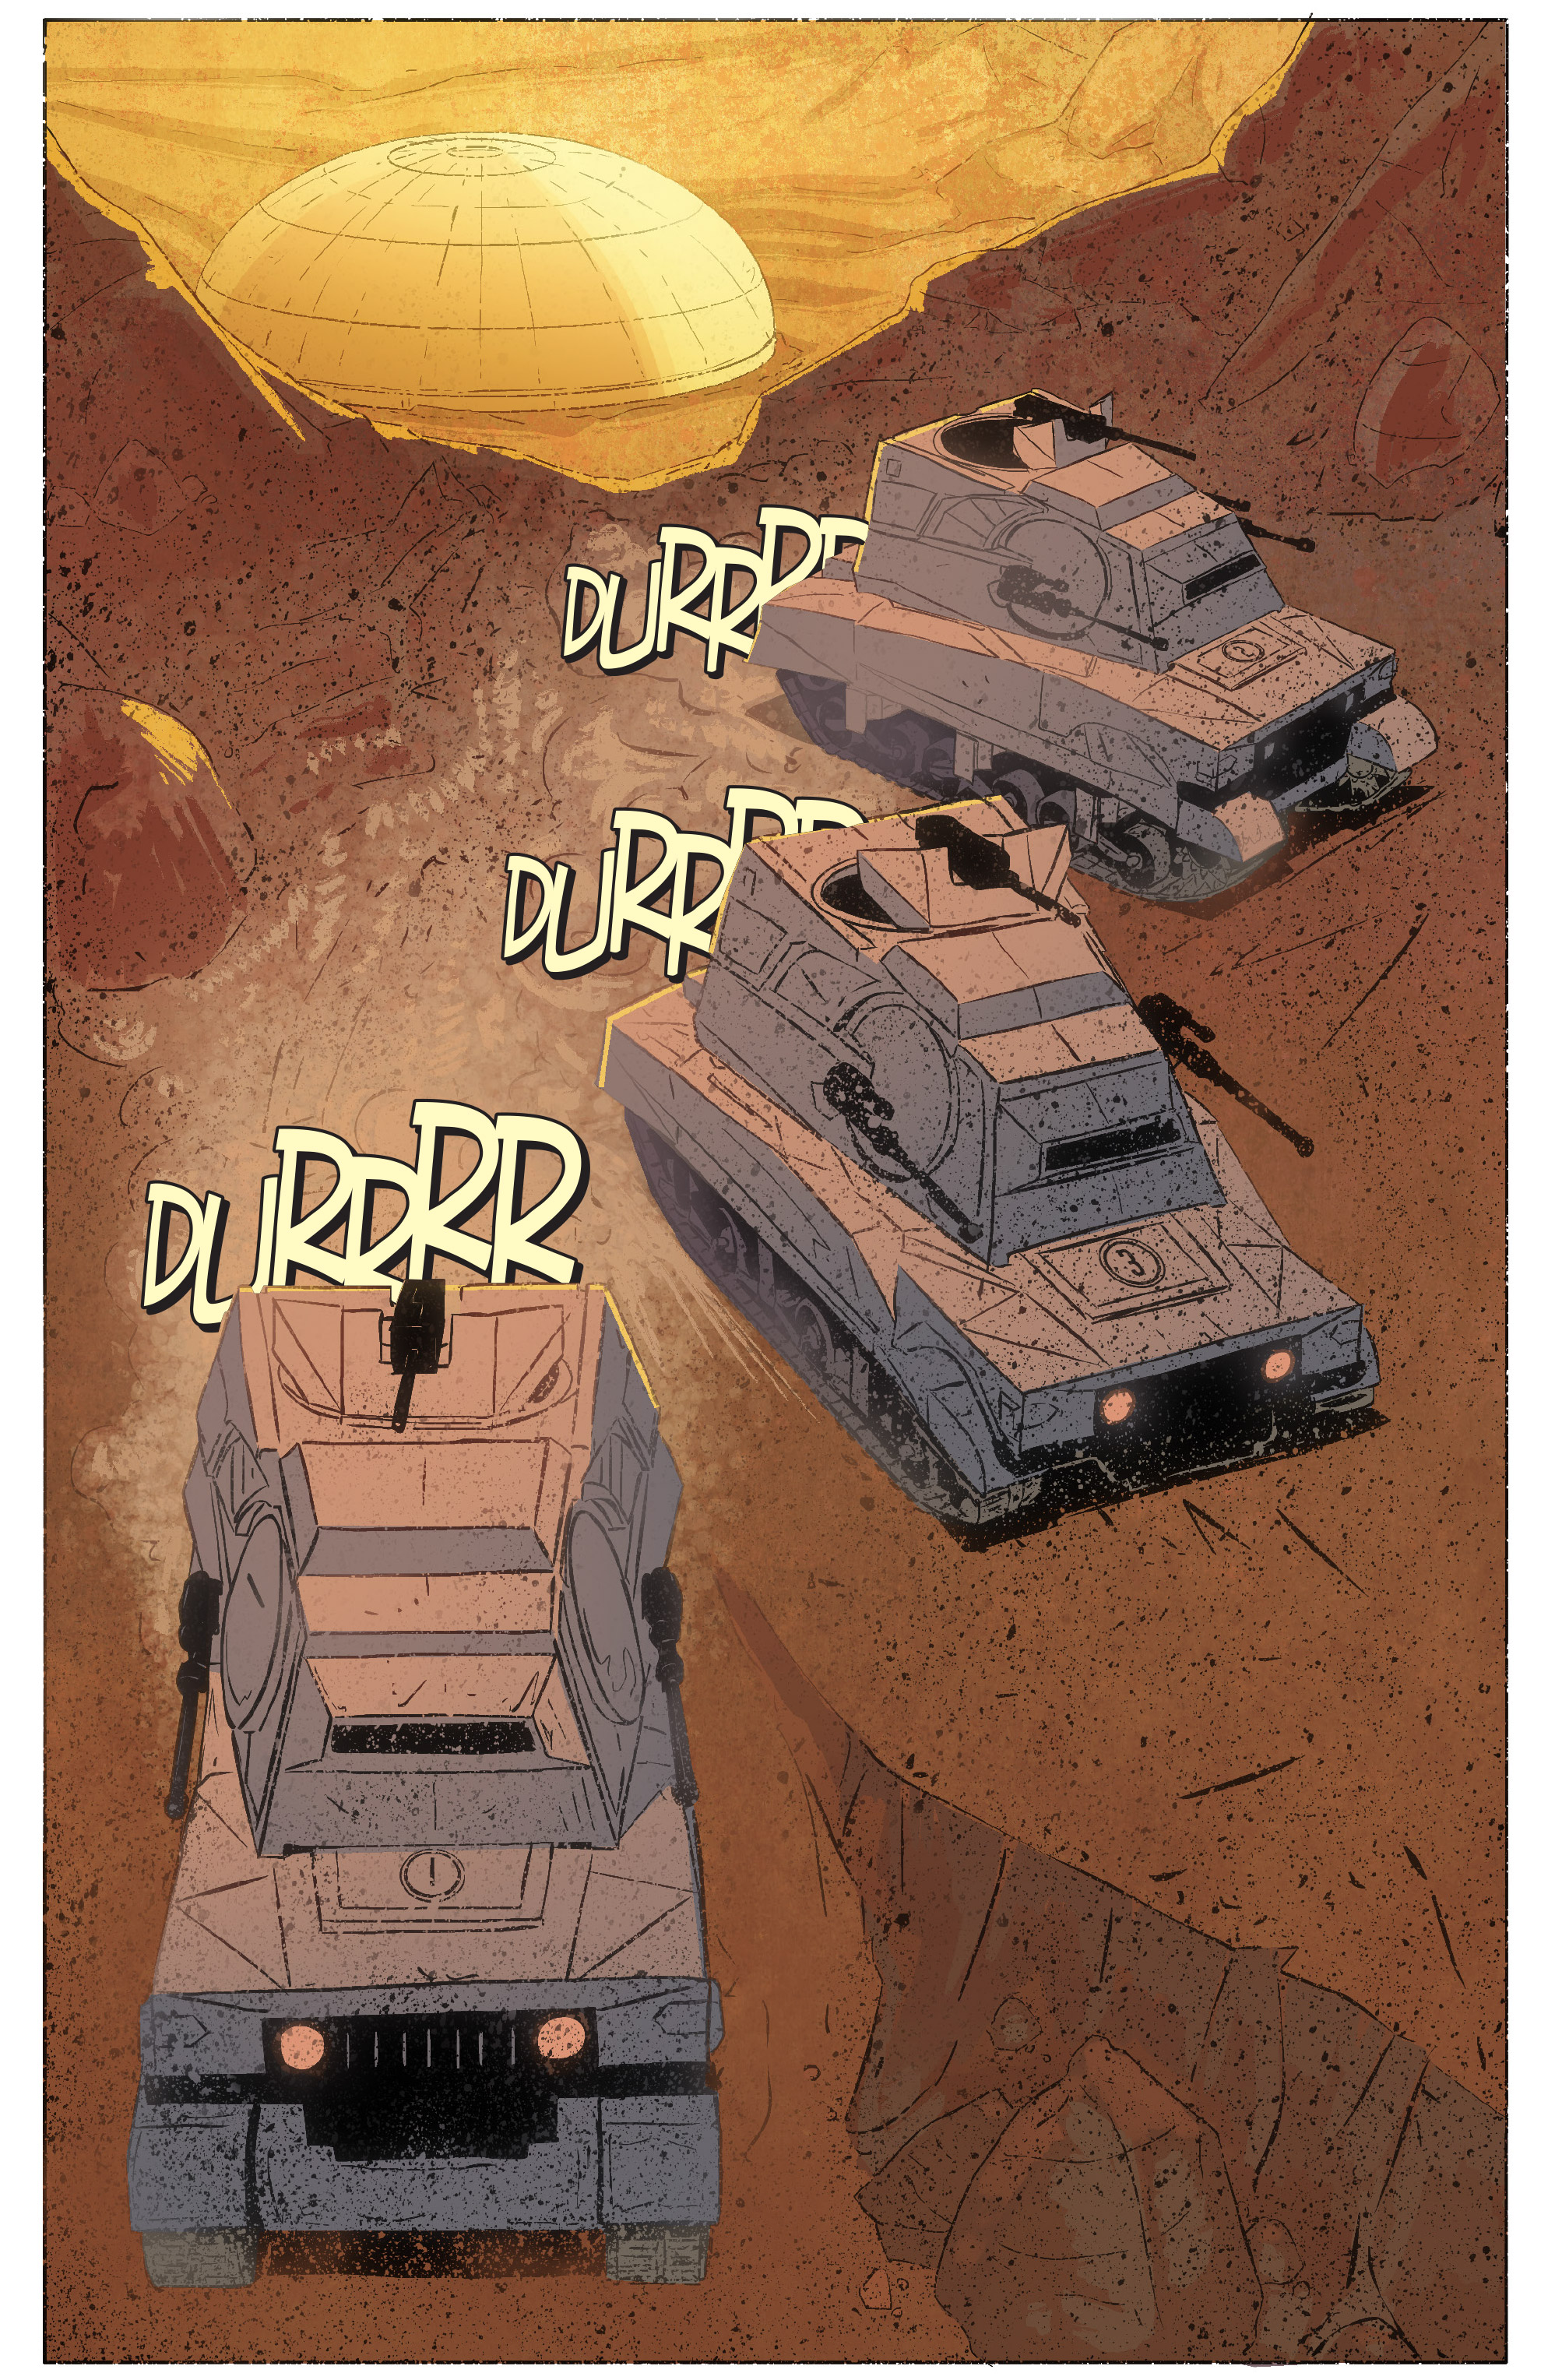 Read online Red Dog comic -  Issue #4 - 18